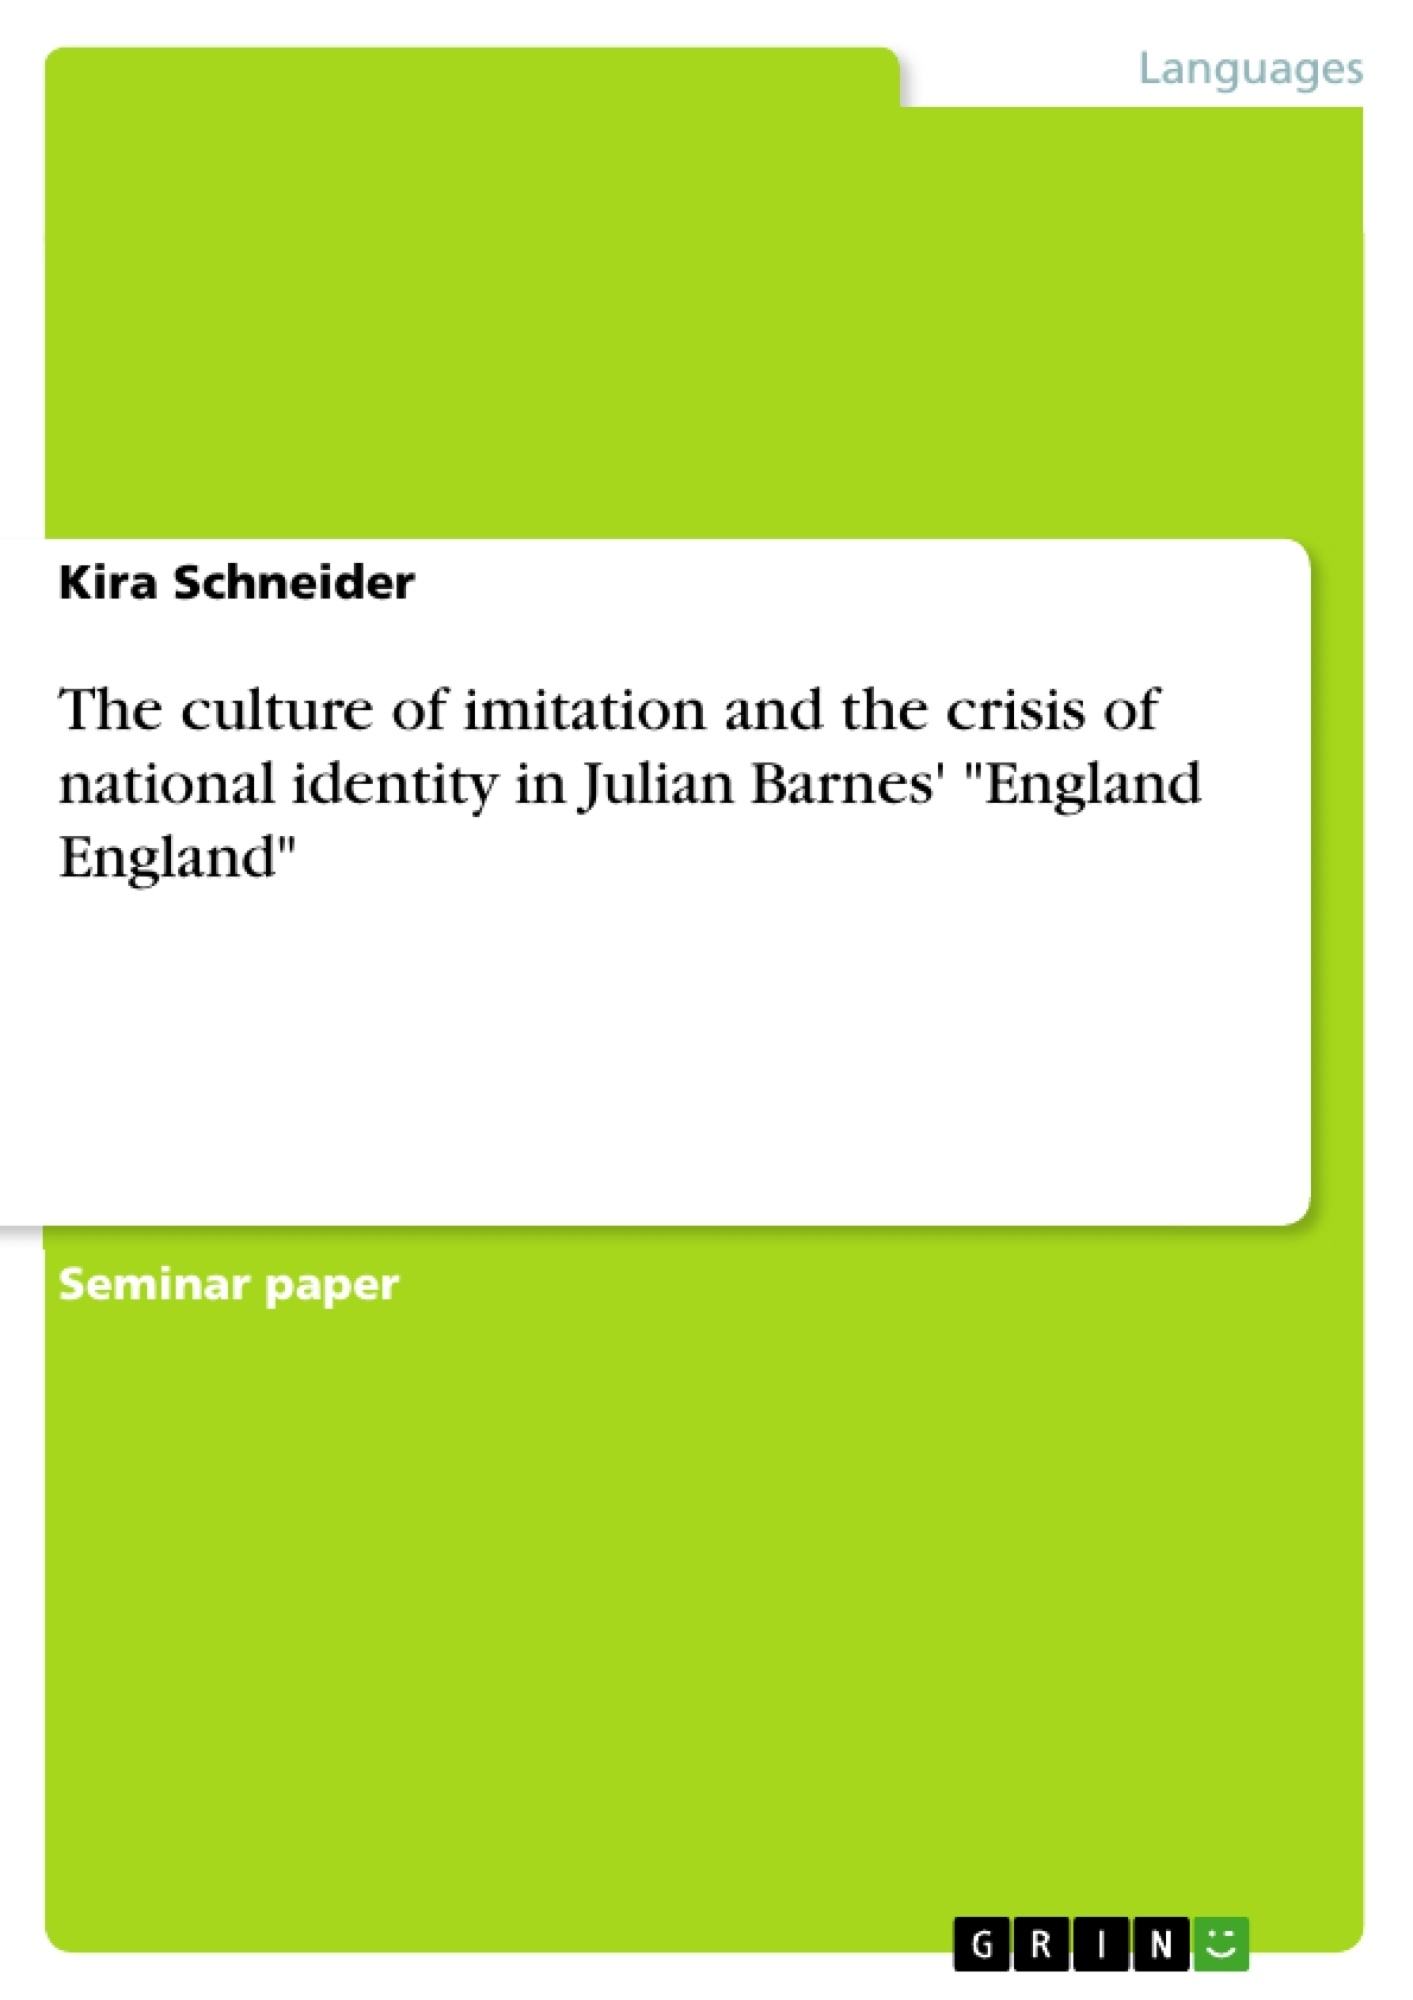 """Title: The culture of imitation and the crisis of national identity in Julian Barnes' """"England England"""""""